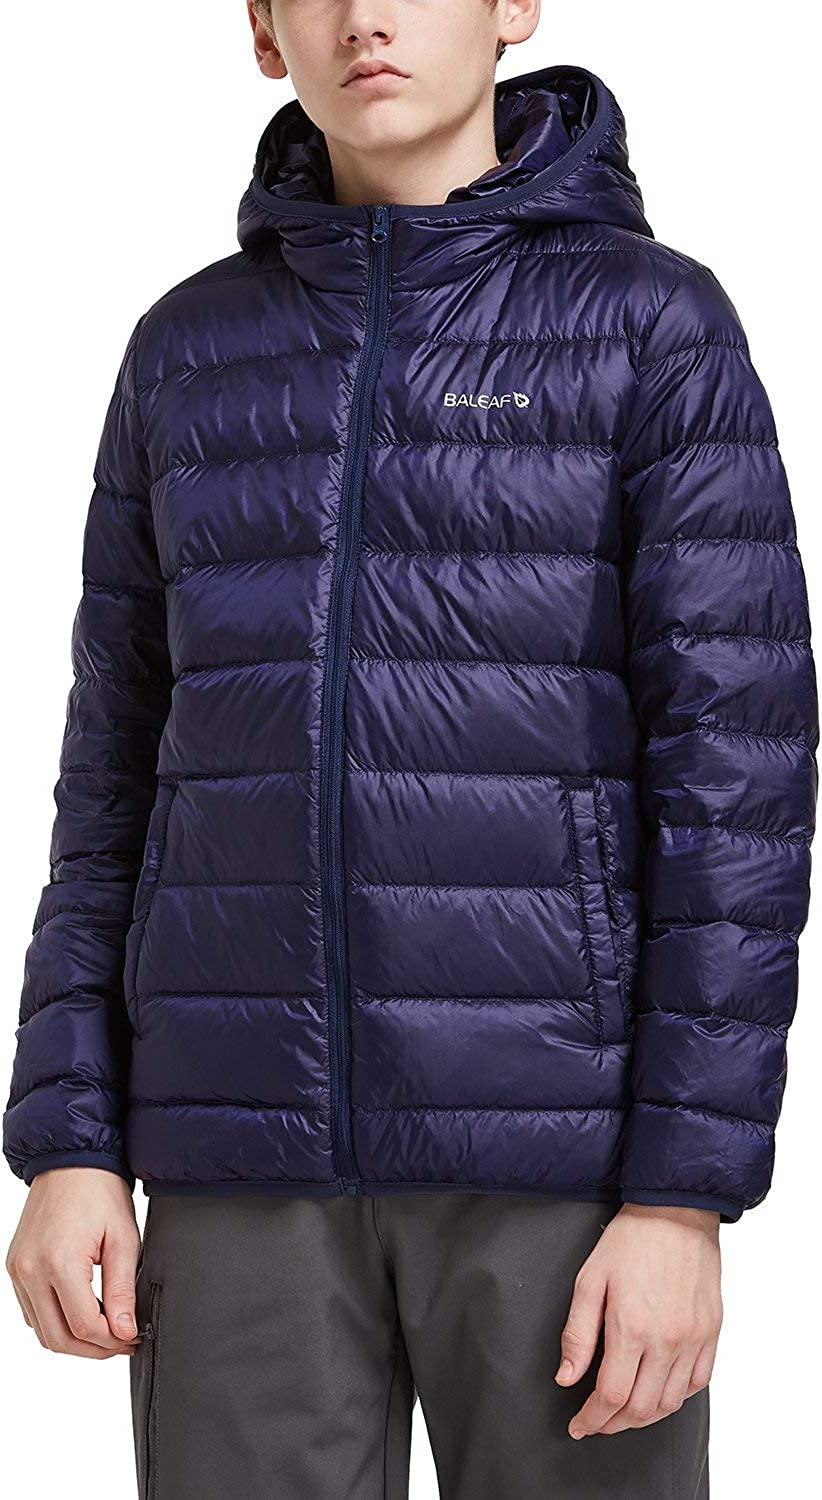 BALEAF Youth//Boys Lightweight Water-Resistant Packable Puffer Hooded Down Jacket Outdoor Windproof Winter Coat